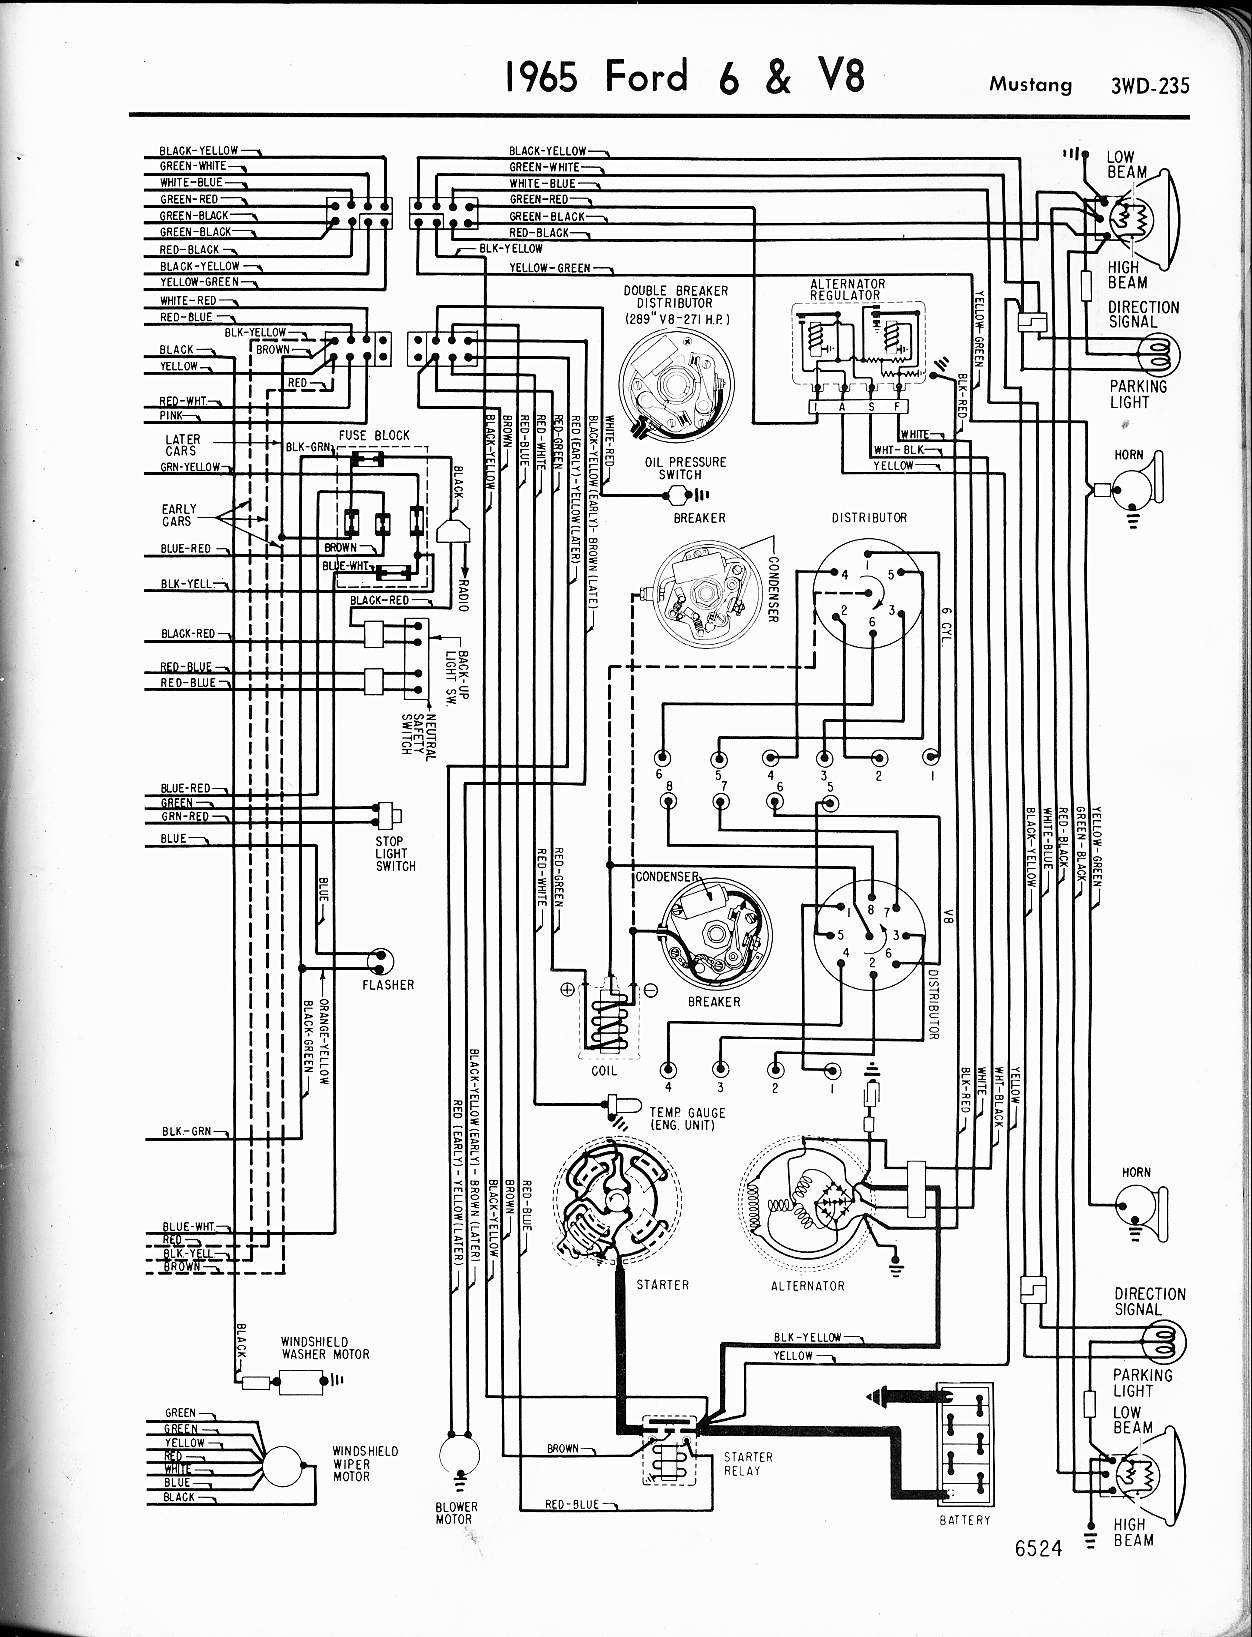 1965_mustang_wiring_2 69 mustang wiring diagram 1969 ford f100 wiring diagram \u2022 wiring 65 mustang dash wiring diagram at bayanpartner.co